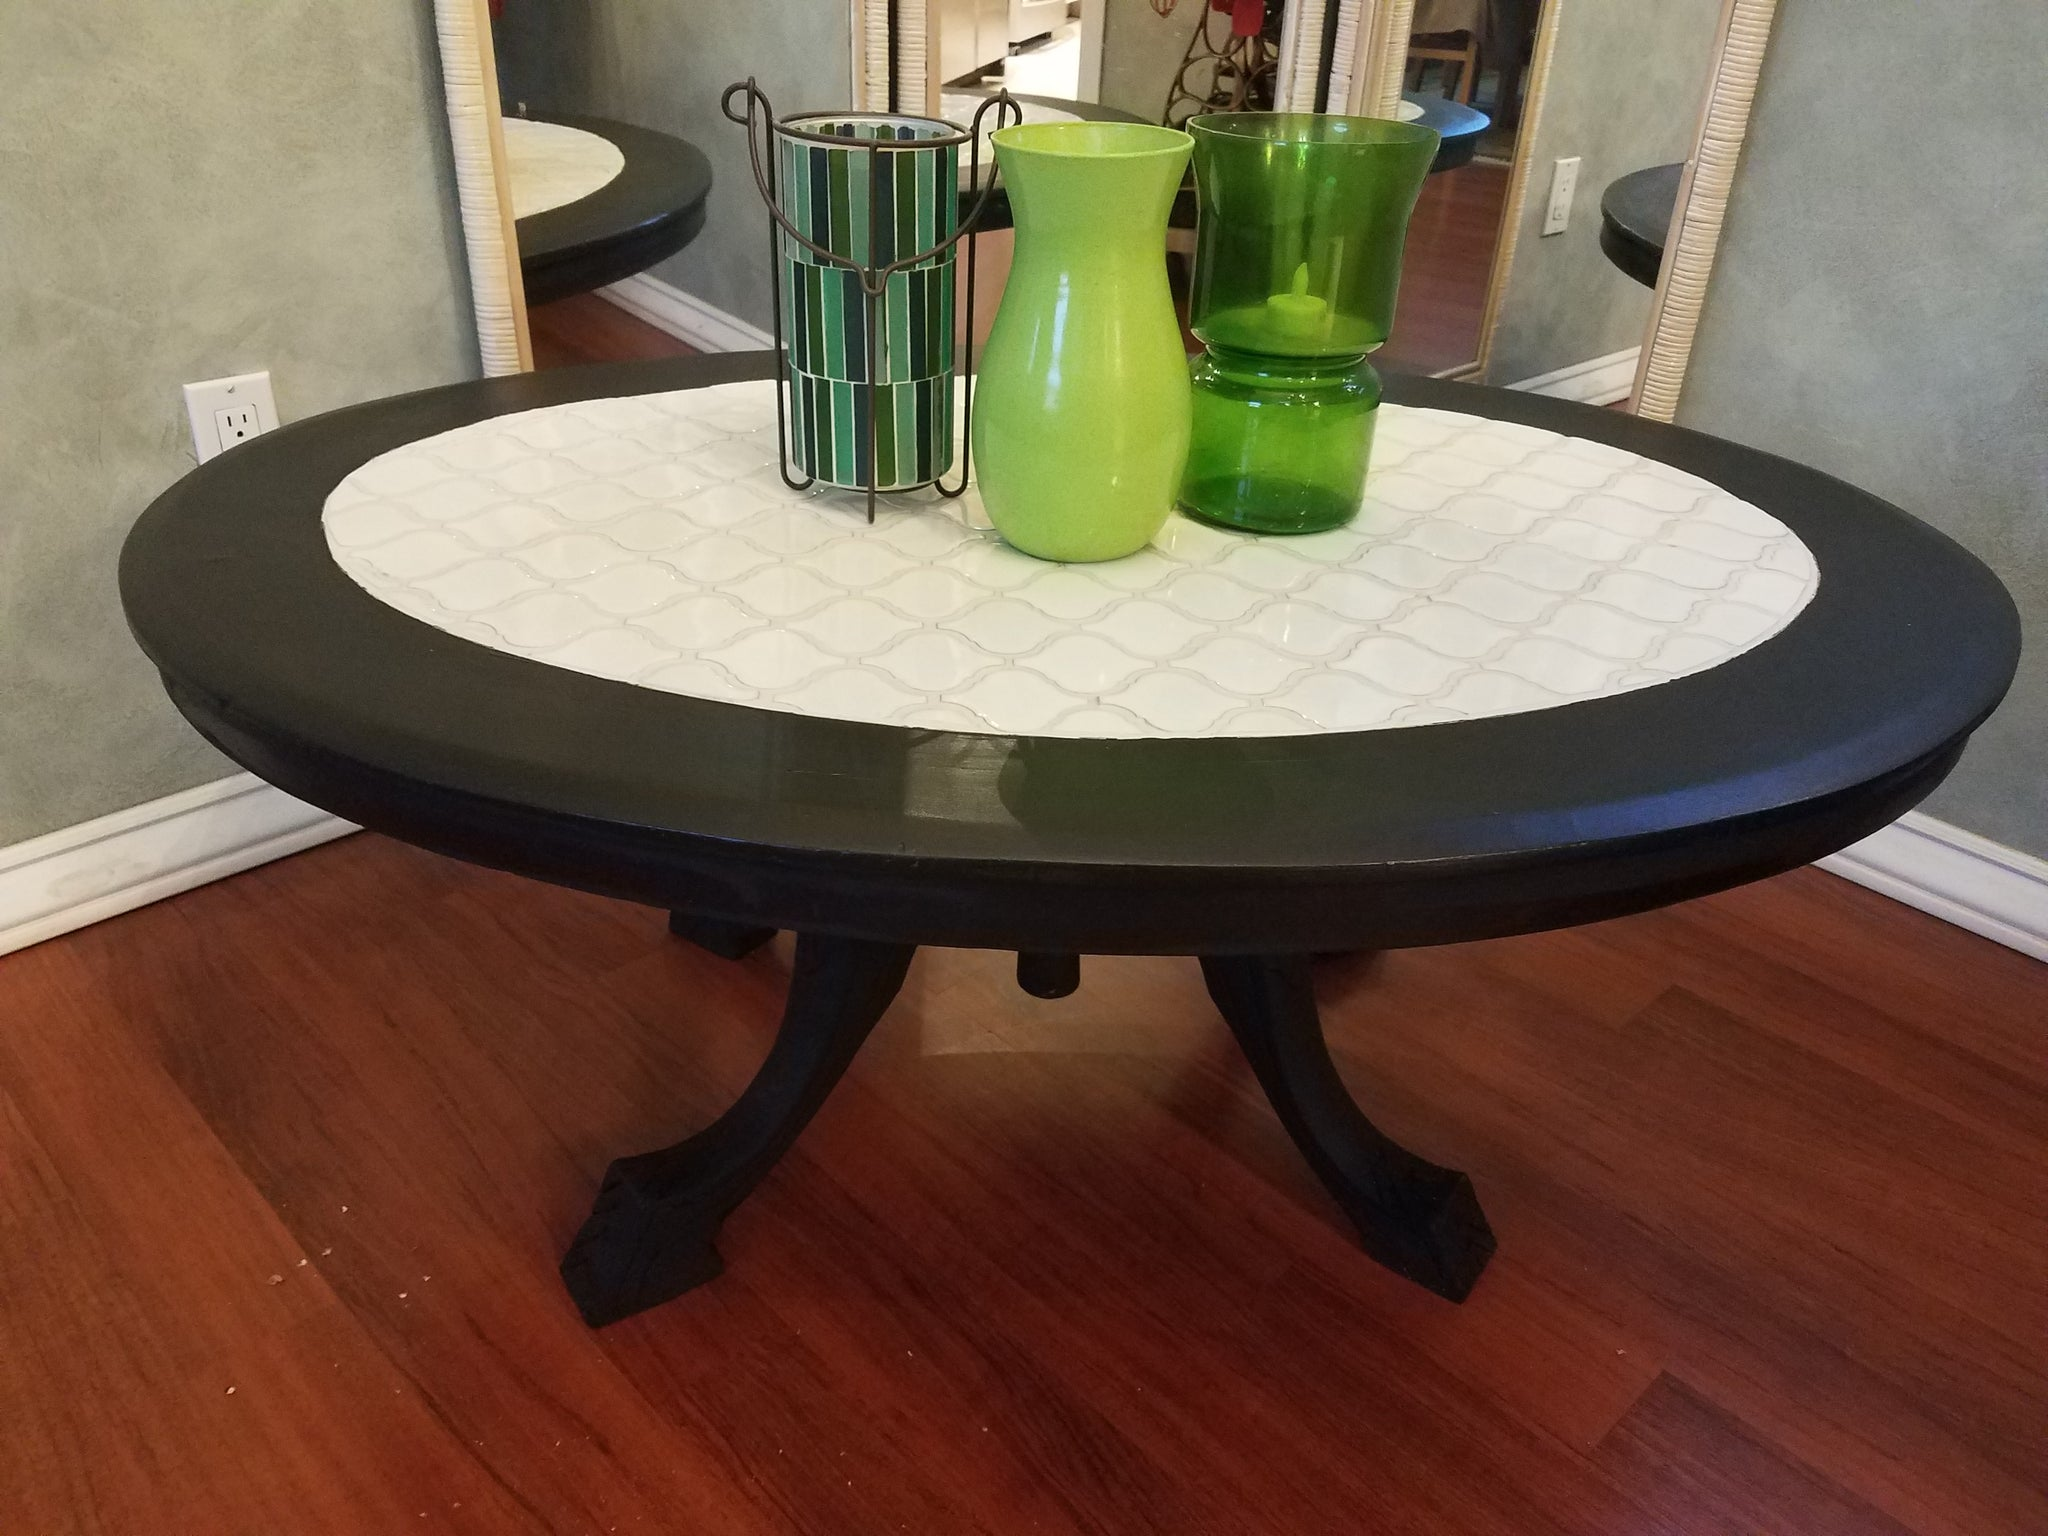 Unique Vintage Mosaic Tile Top Coffee Table – Project Vintage US